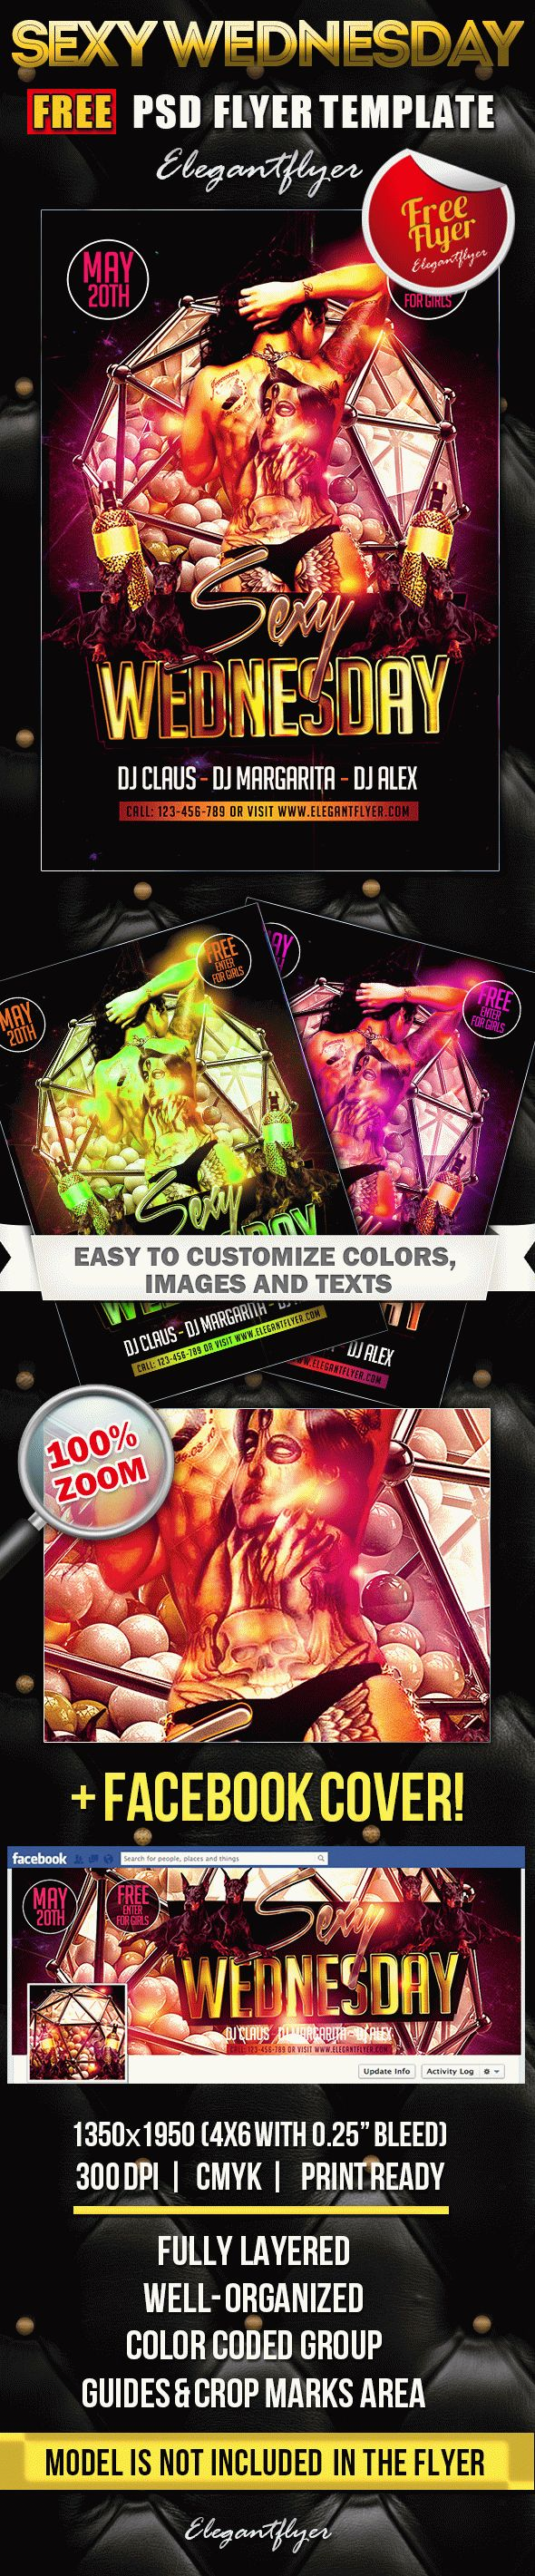 Sexy Wednesday – Free Flyer PSD Template